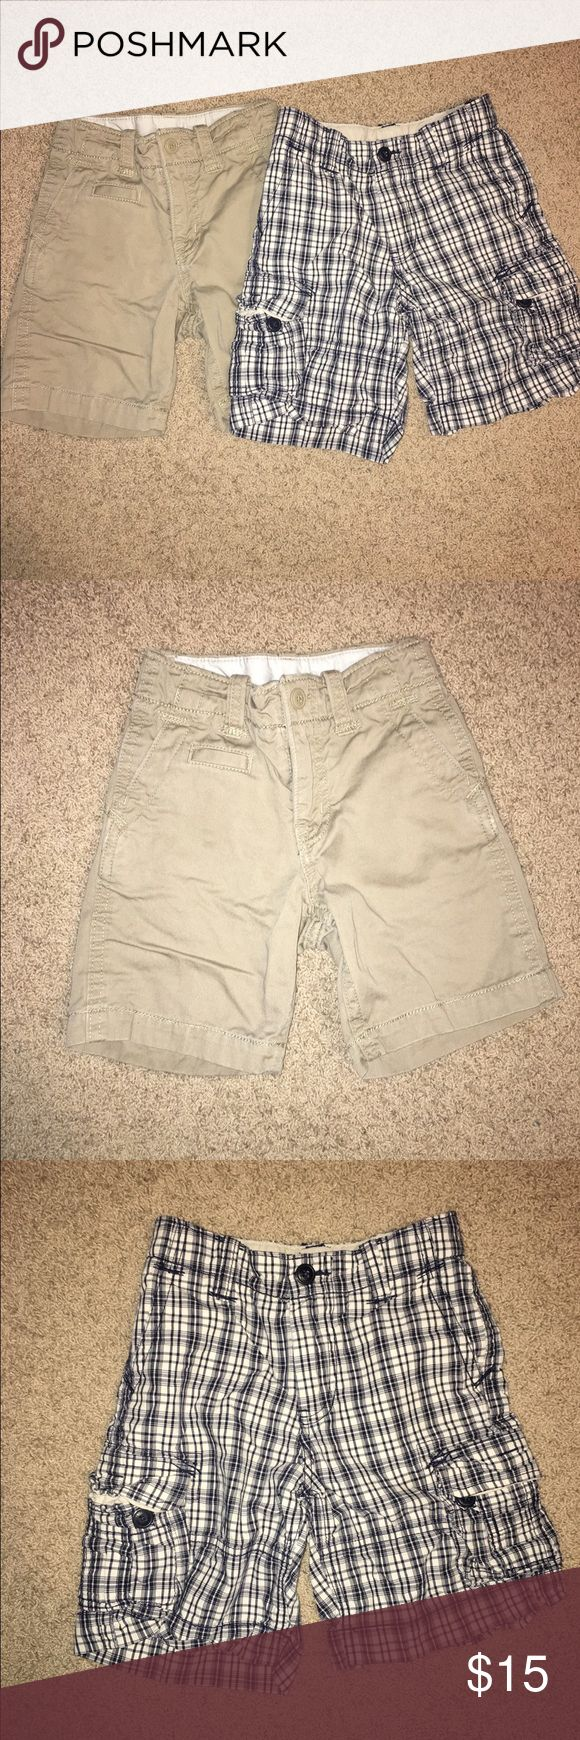 2 pair of Gap Kids boy's shorts Excellent condition!  Two pair of boys chino shorts.  One pair is true khaki, the other a cream/ blue plaid.  Adjustable waist on both although the buttons are missing on the inside waist of the plaid pair. GAP Bottoms Shorts